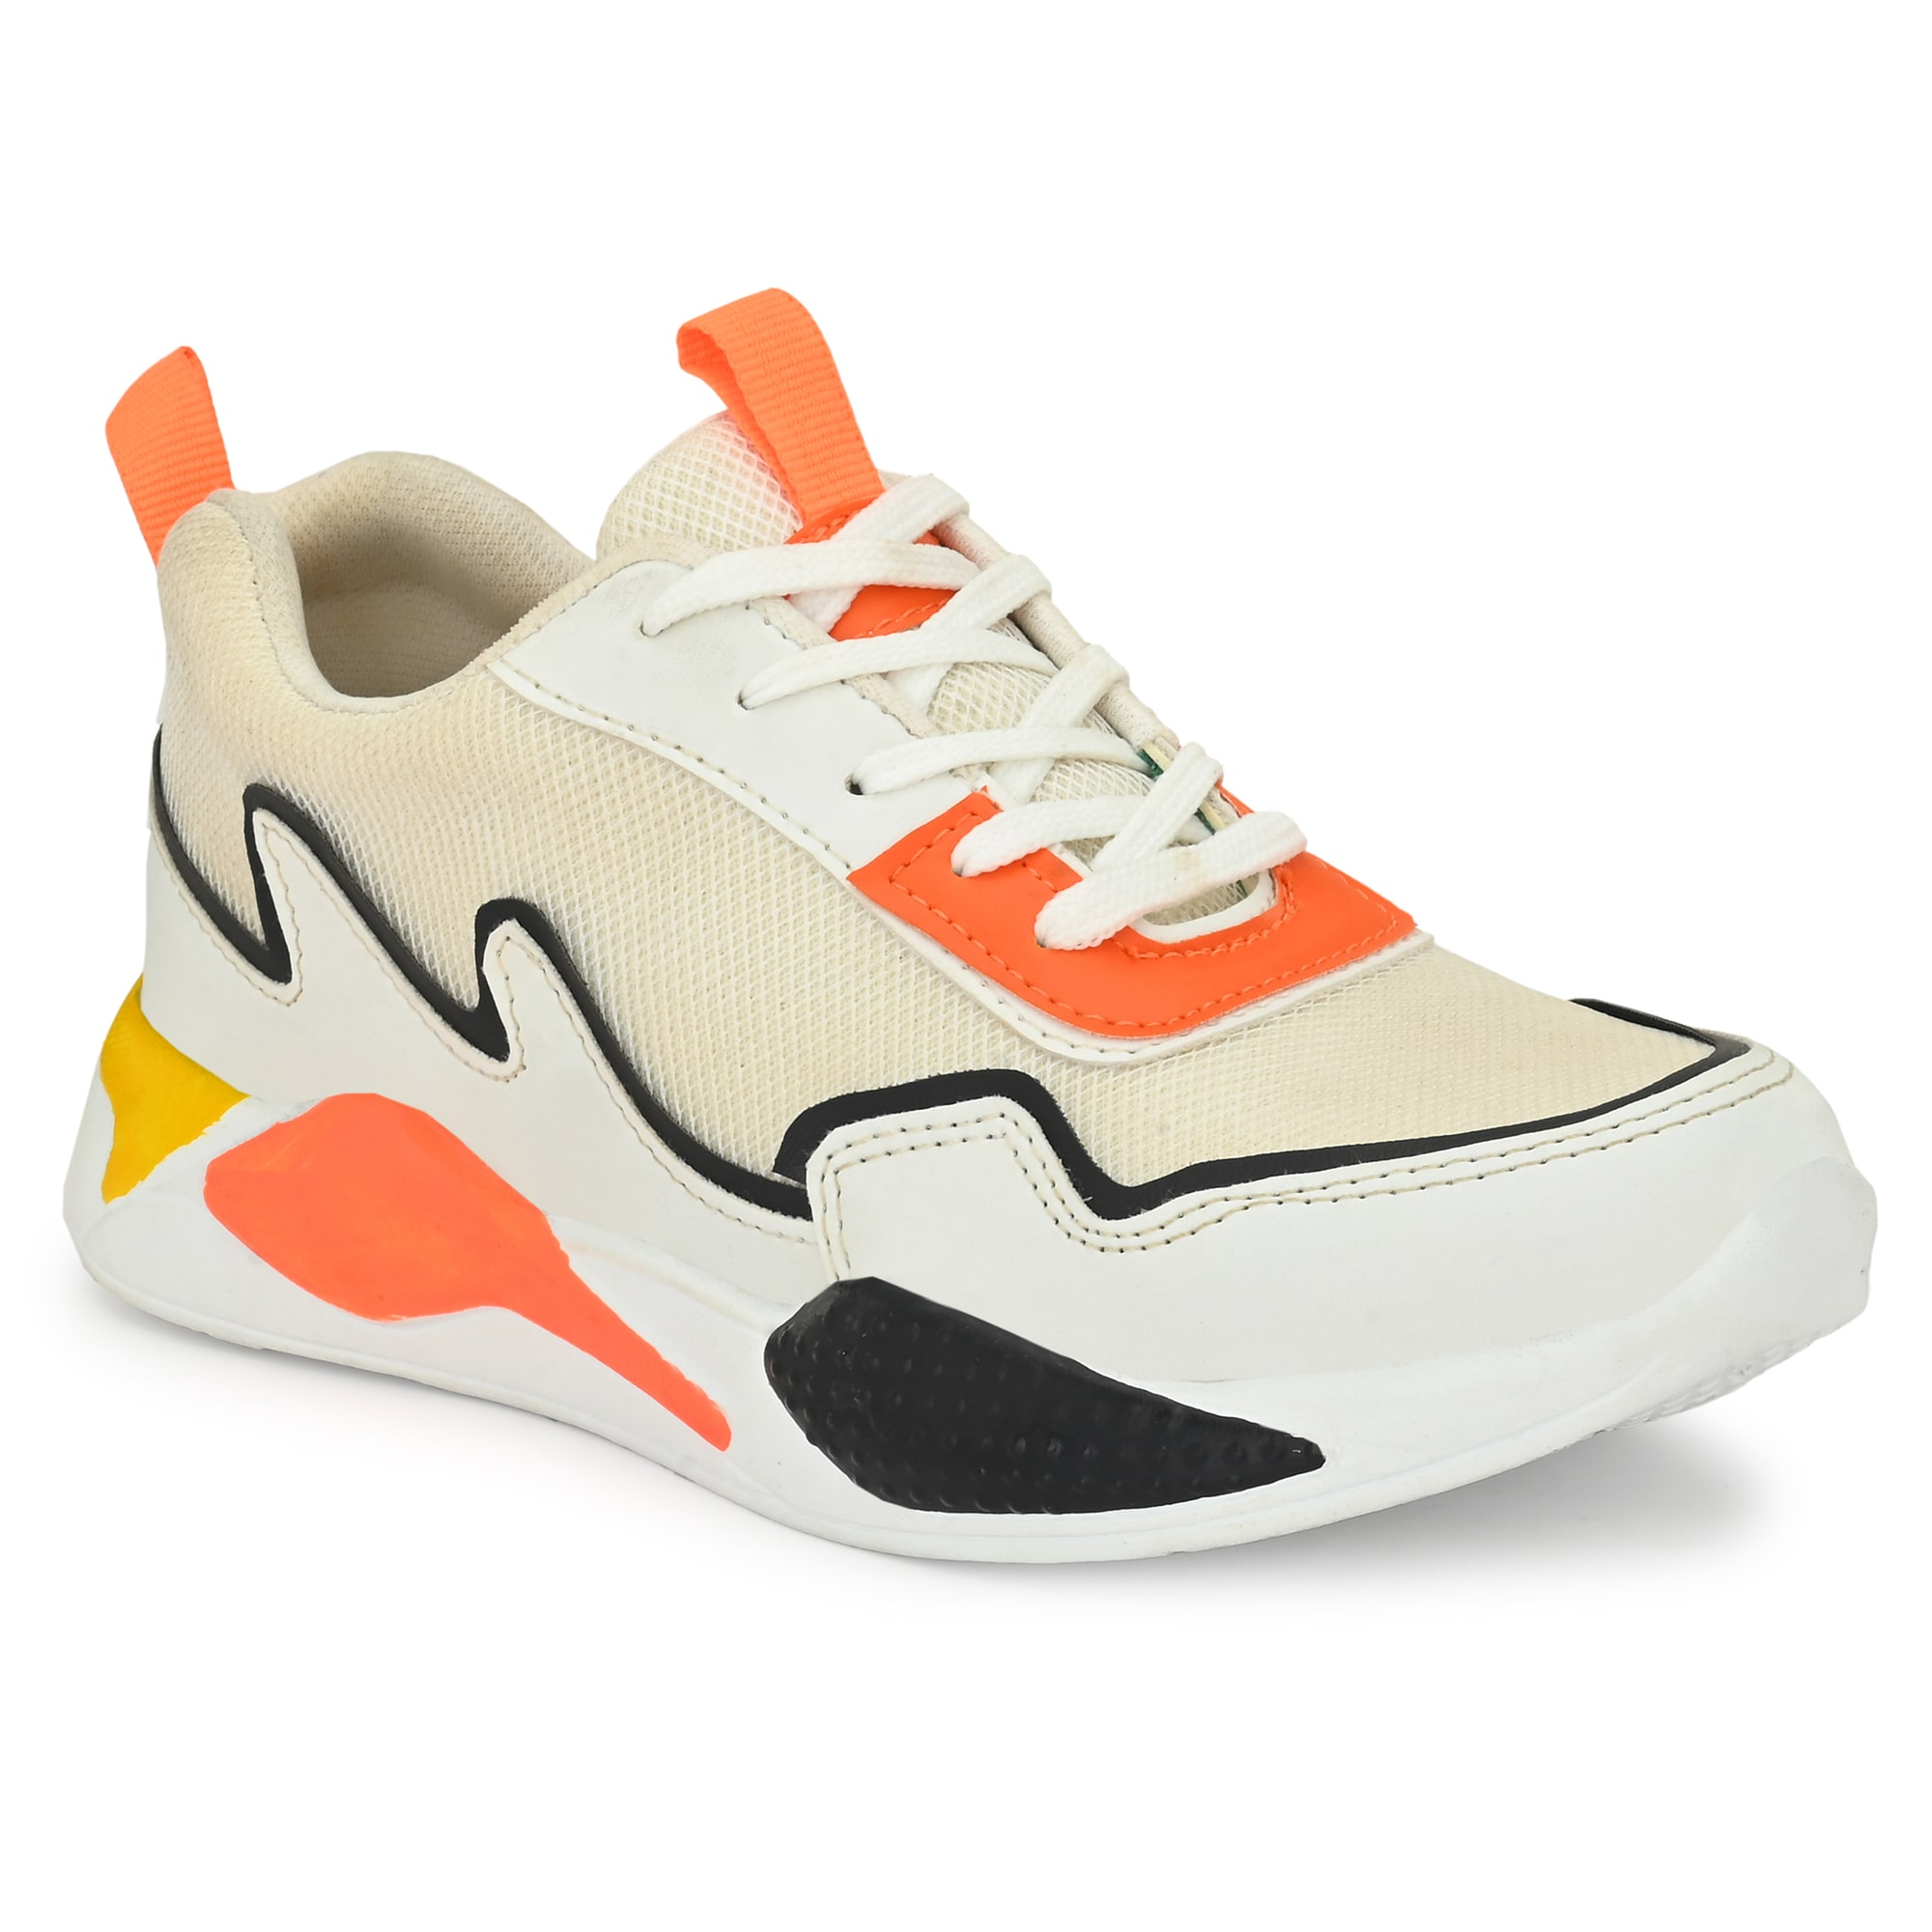 HEEDERIN Men Running Shoes ( White ) for Men - Buy HEEDERIN Men's Sport  Shoes at 50% off. |Paytm Mall